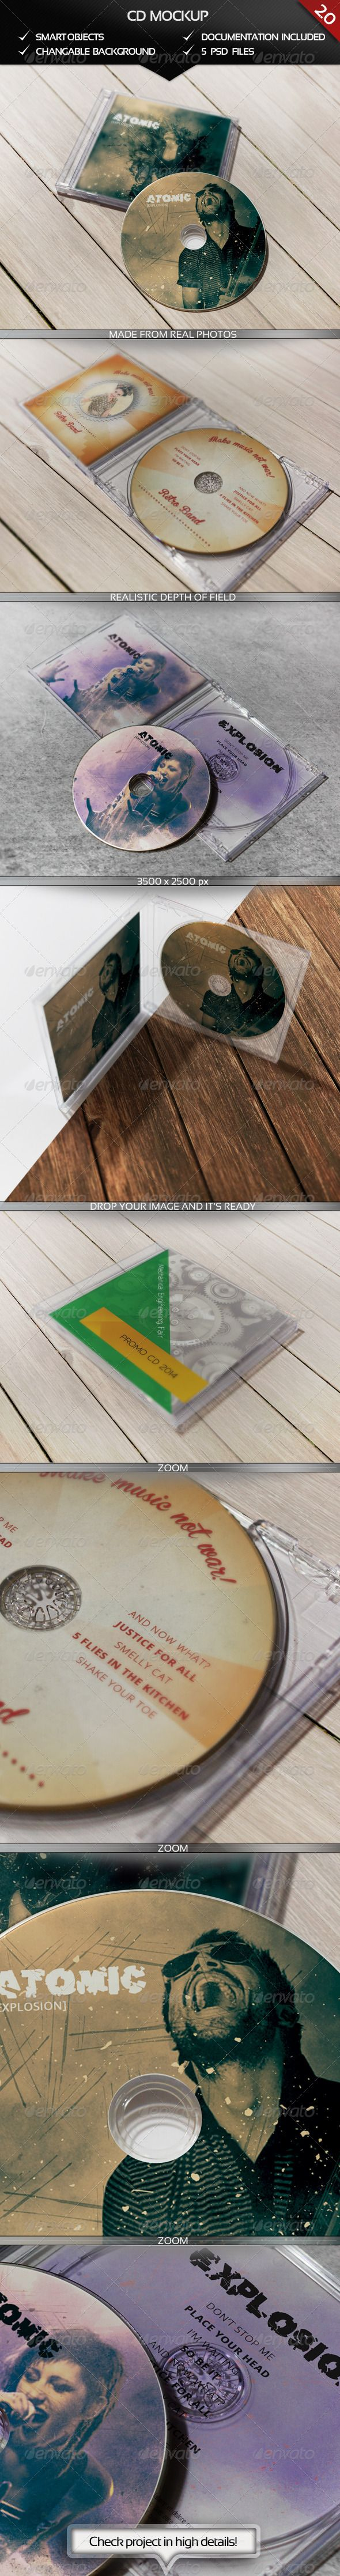 CD Realistic Mockup  #GraphicRiver        CD Realistic Mockup 3500×2500 px project,  5 PSD files, Documentation file included